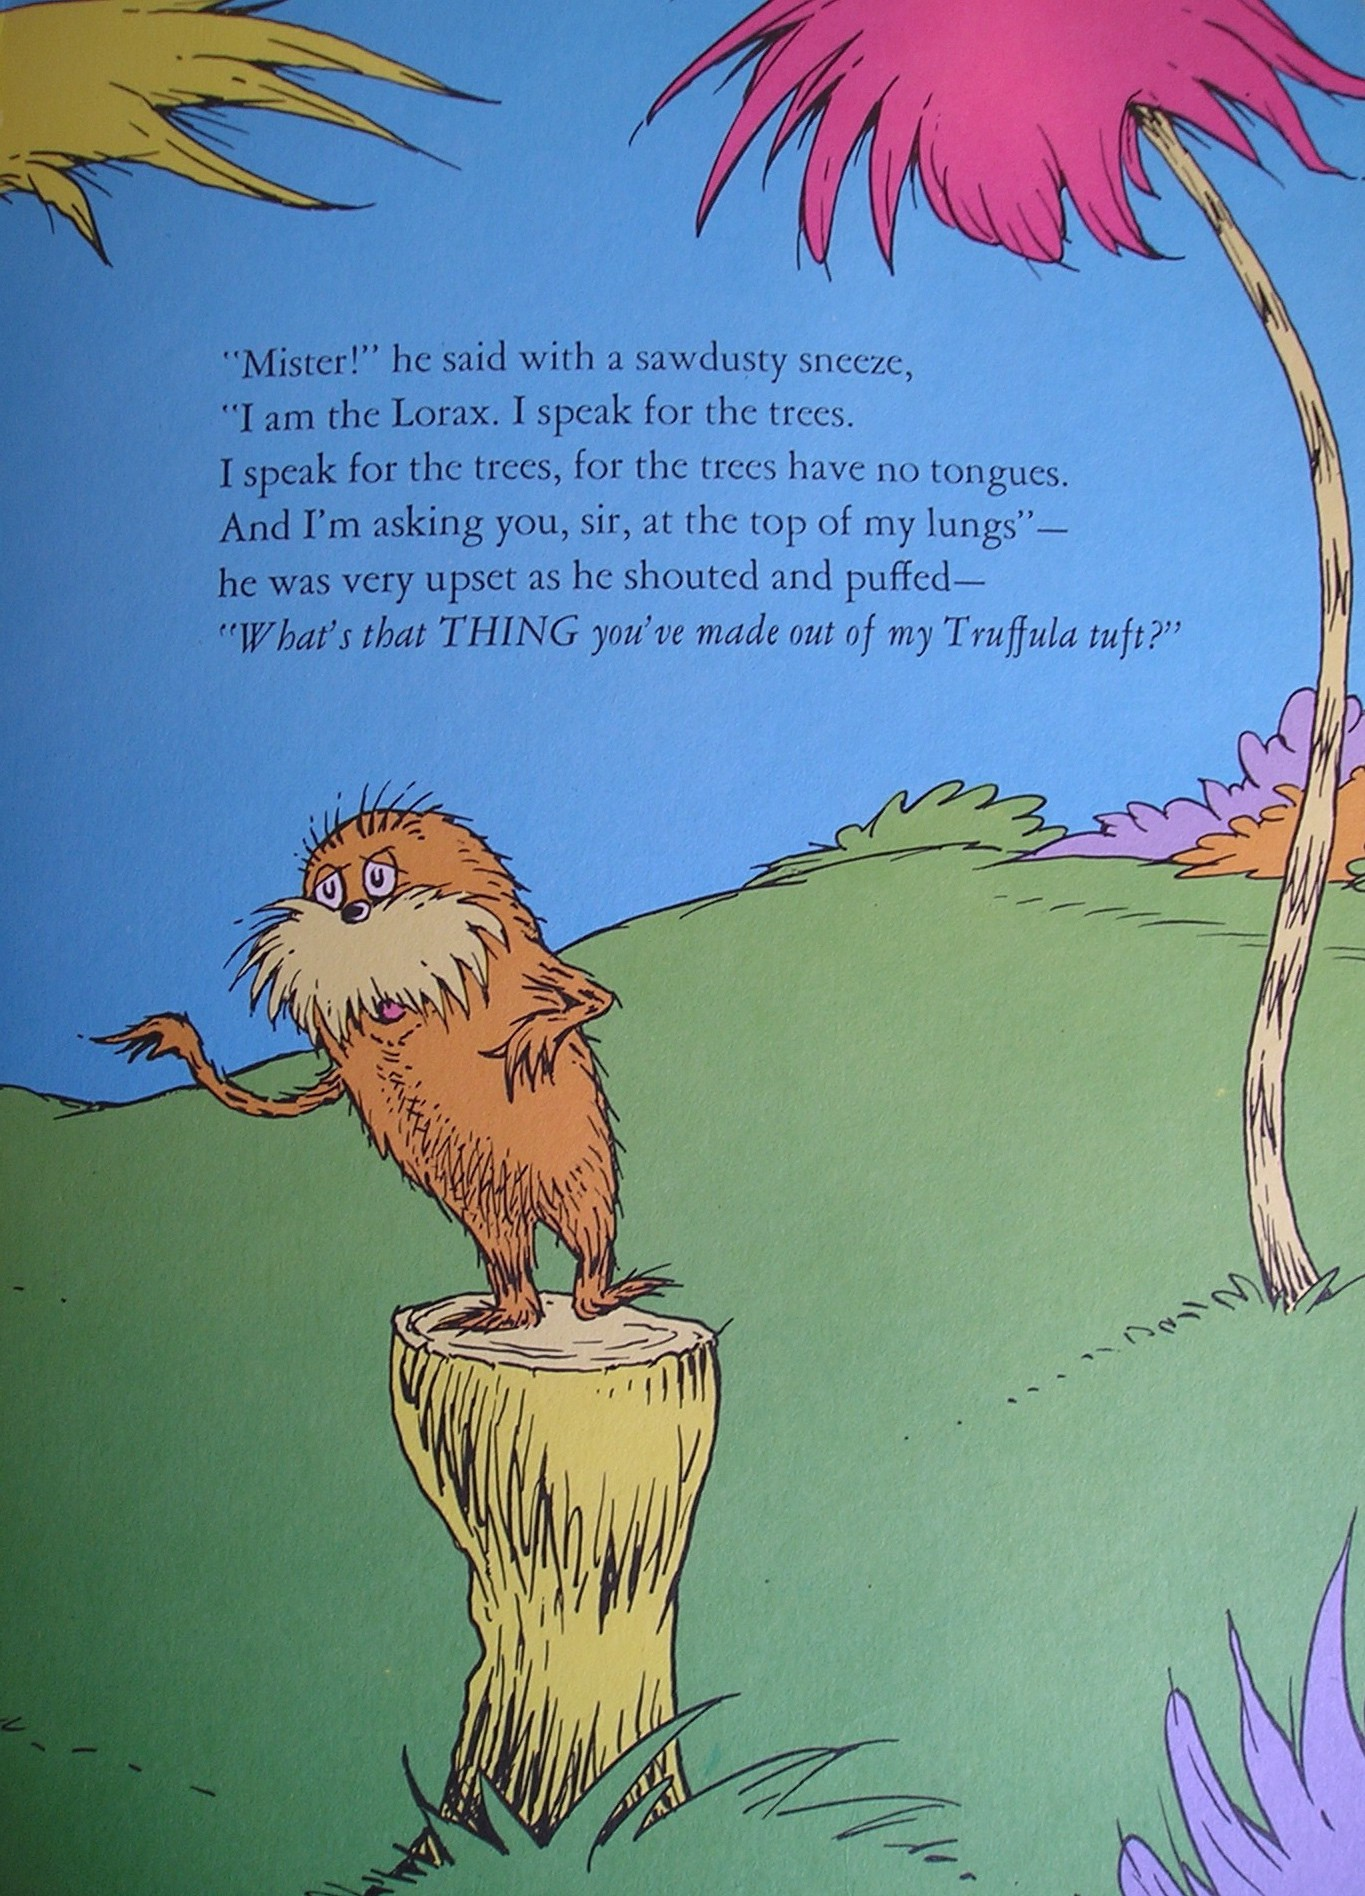 Dr Seuss A Beloved American Artist And Author